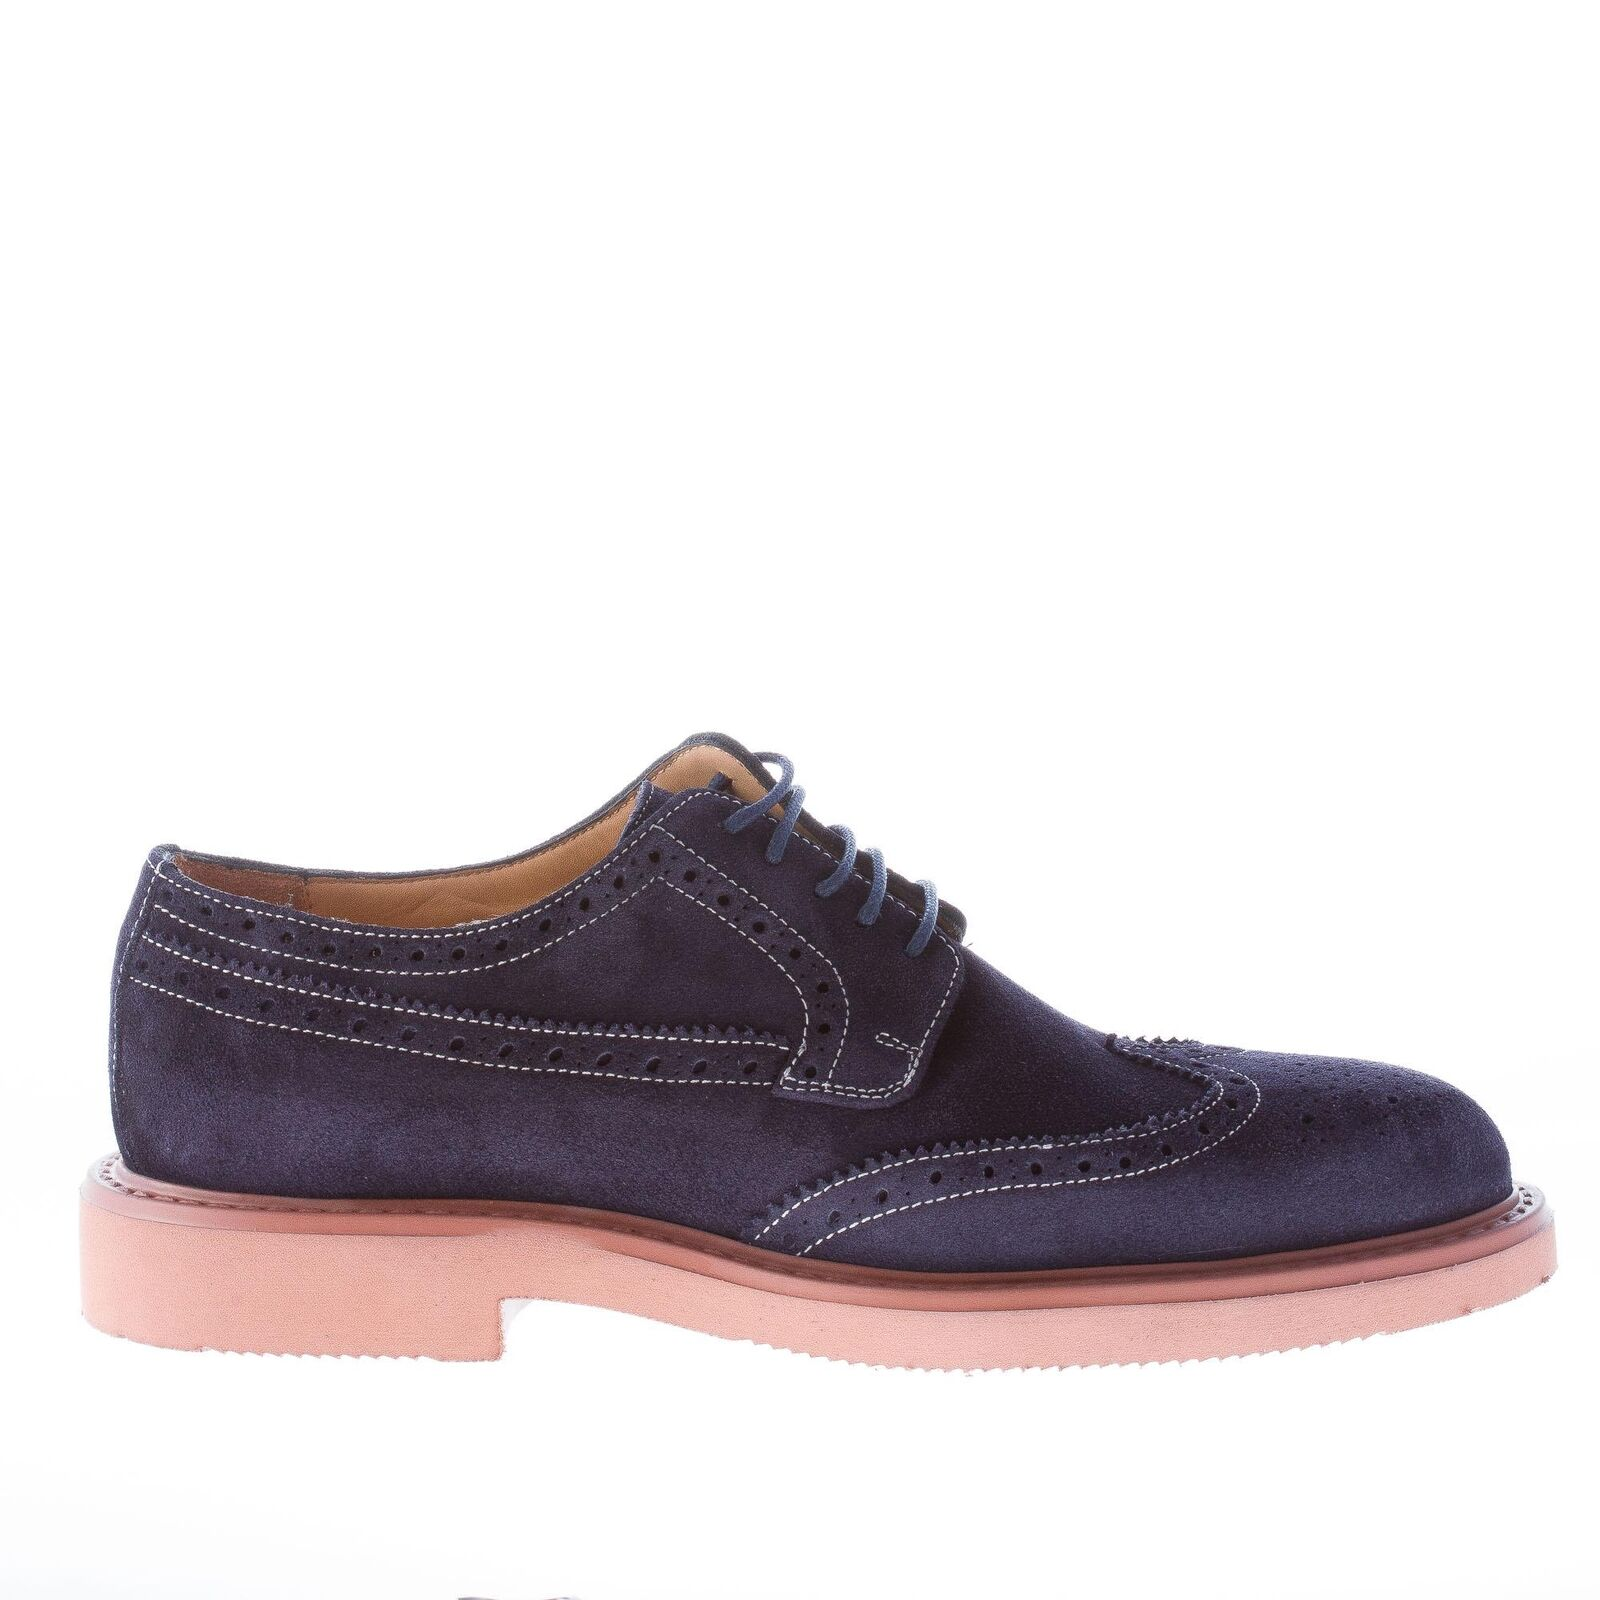 STRIKE FIRENZE herren schuhe shoes bluee suede derby brogue lightweight sole